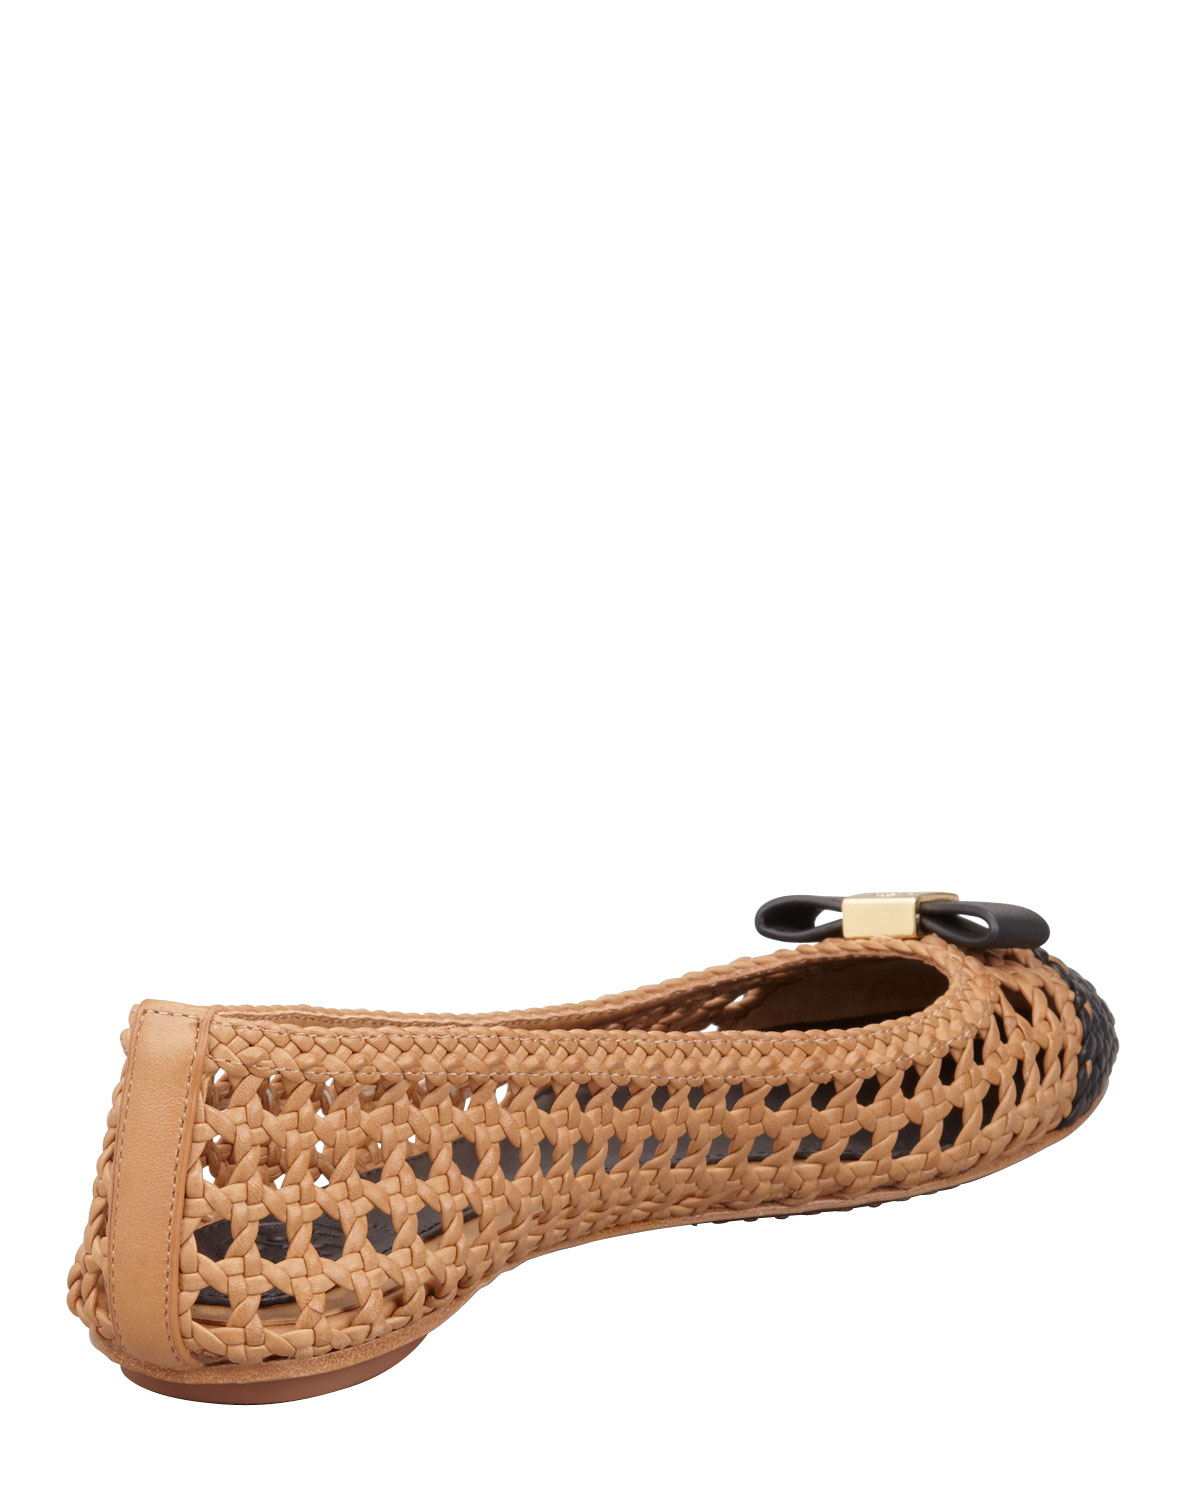 outlet low price fee shipping quality outlet store Tory Burch Woven Leather Flats tlgOk49C